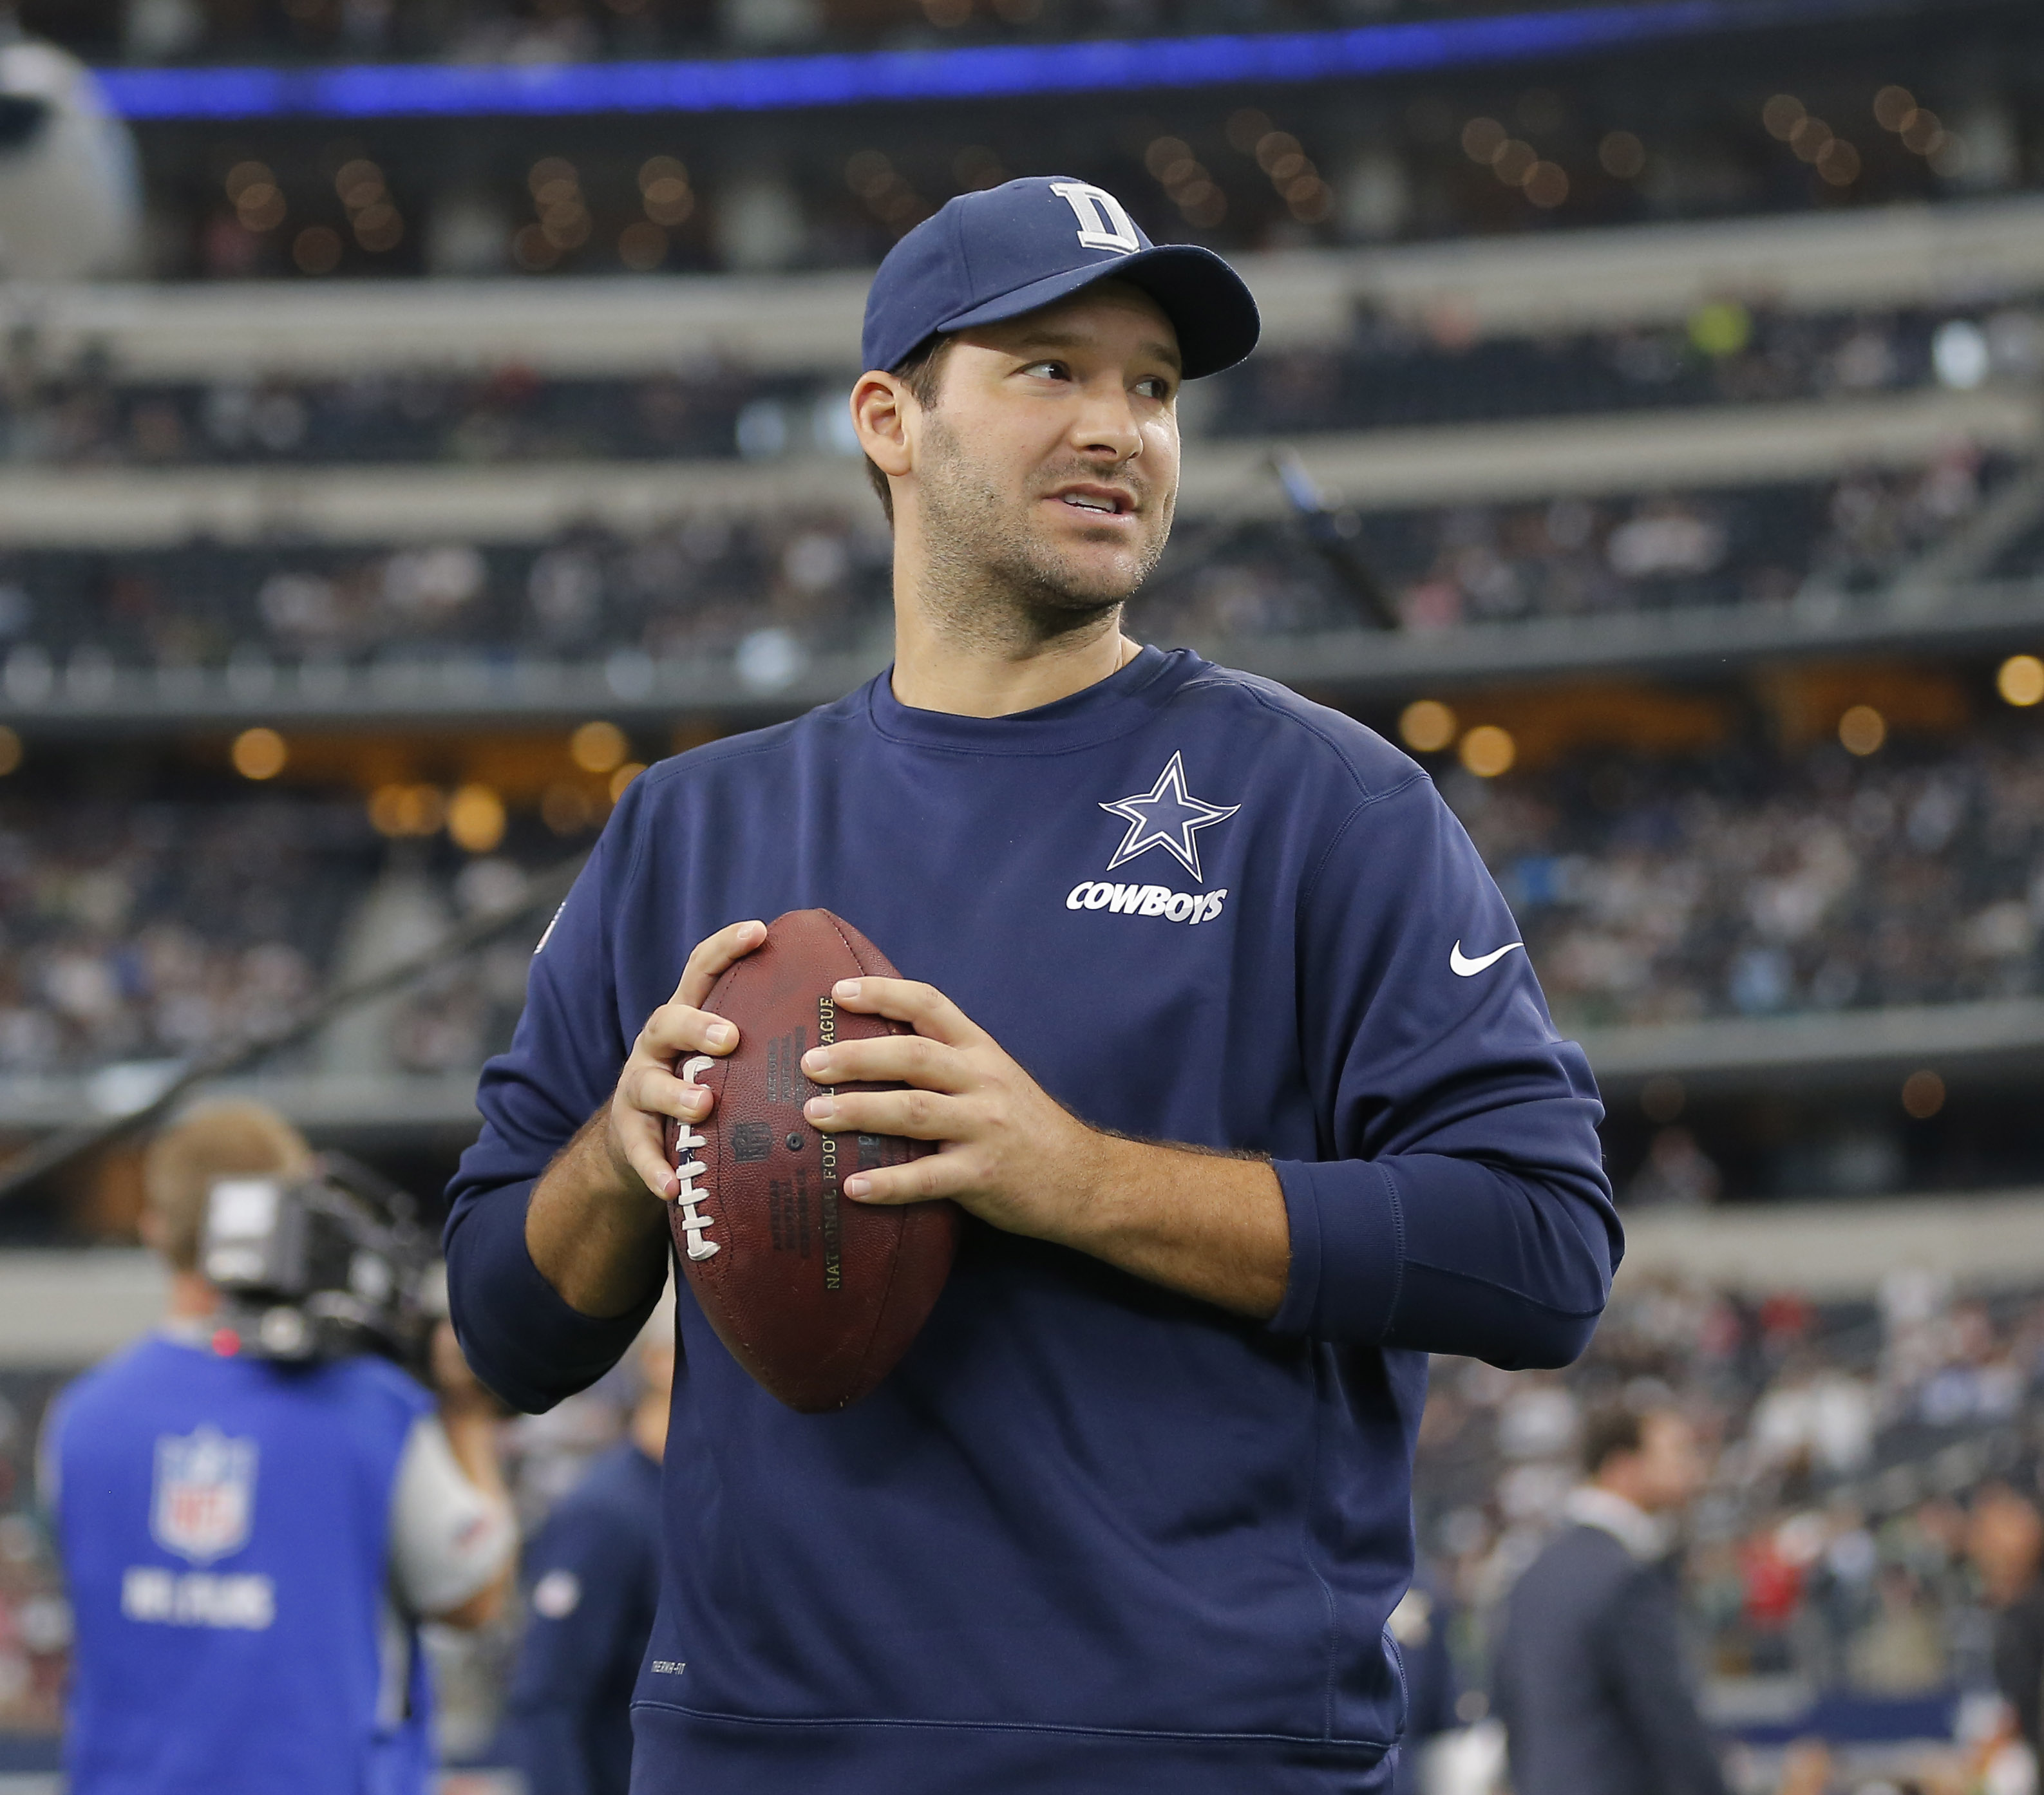 FILE - In this Nov. 1, 2015, file photo, injured Dallas Cowboys quarterback Tony Romo is shown prior to an NFL football game in Arlington, Texas. Tony Romo, scout team quarterback. That's the best the Dallas star could do the past two weeks in his return